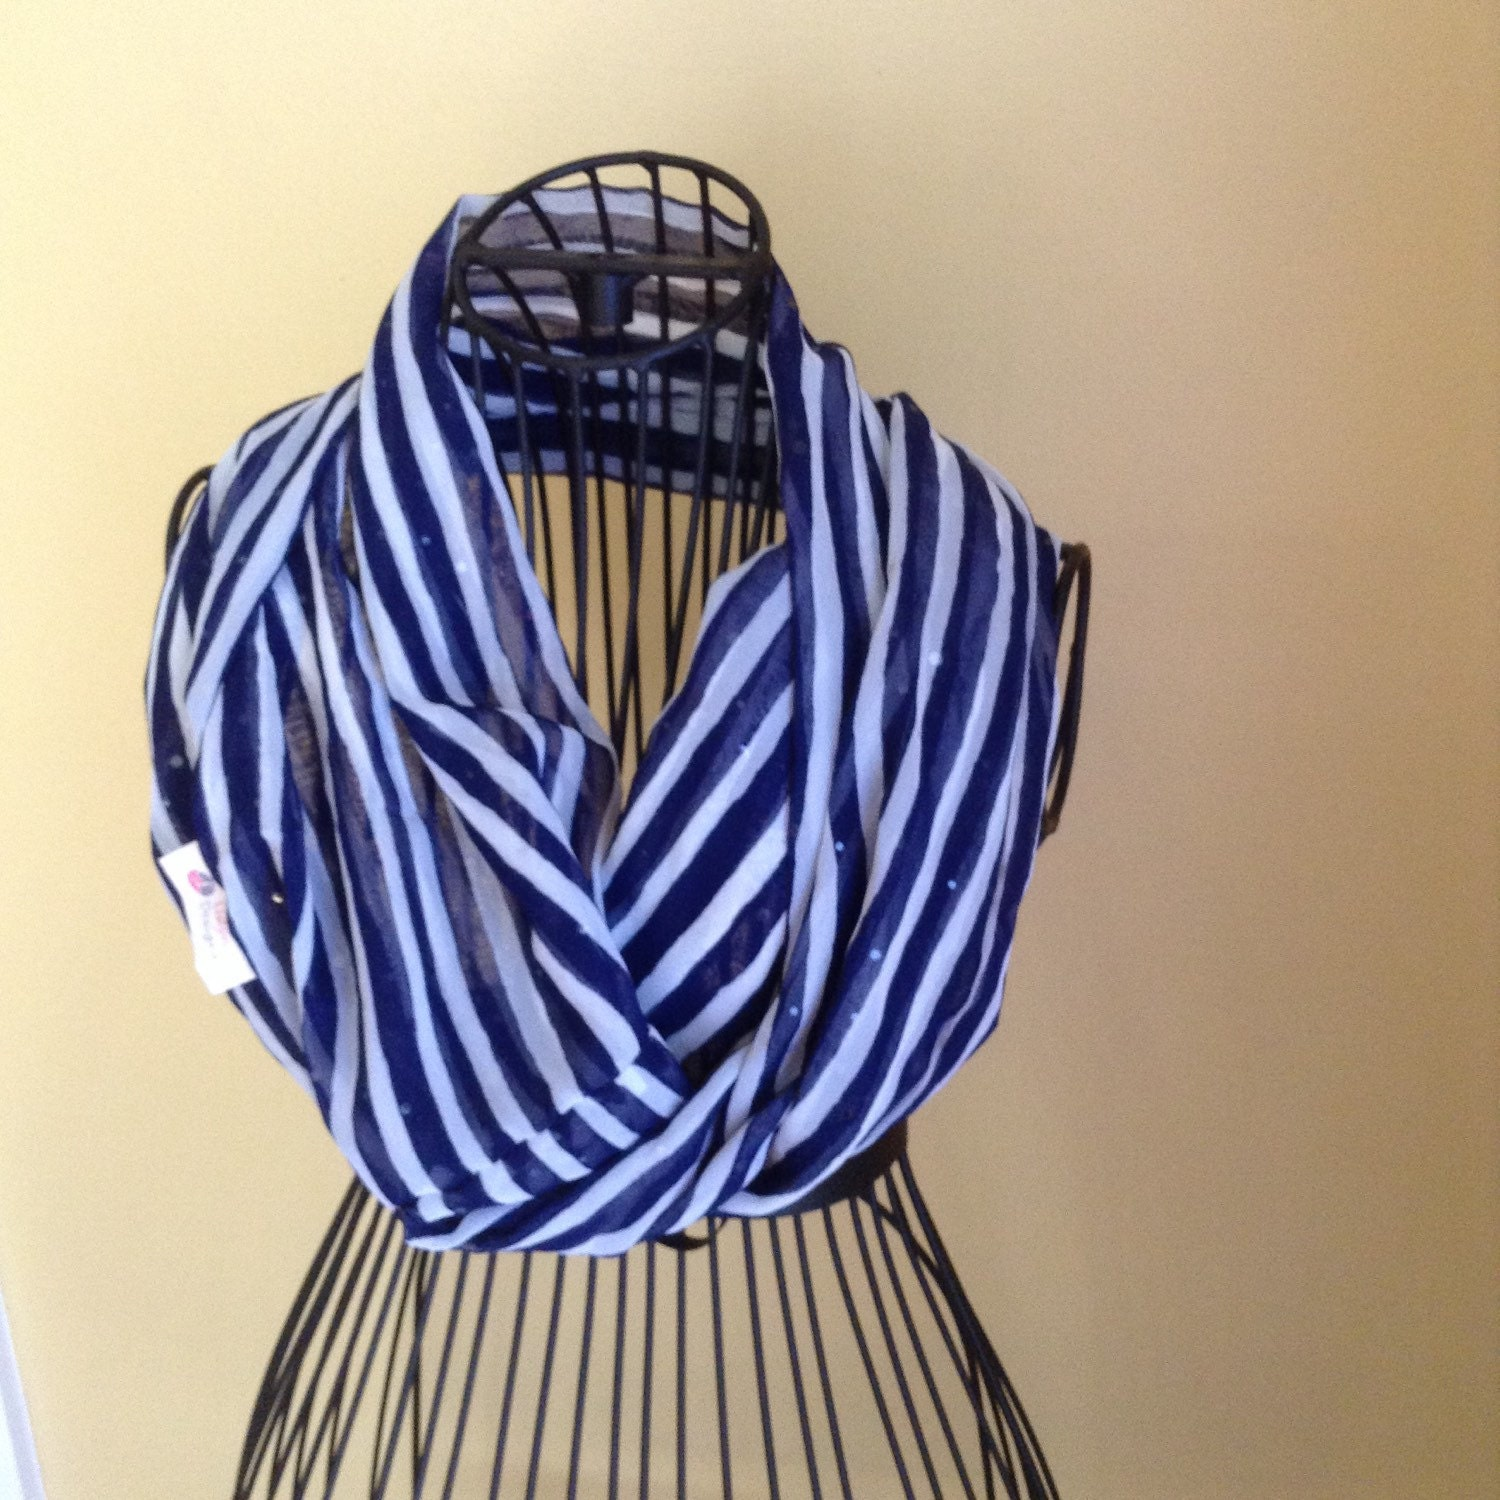 Find great deals on eBay for blue white scarf. Shop with confidence. Skip to main content. eBay: Shop by category. Shop by category. Enter your search keyword Rue21 - Blue White Infinity Scarf 66x Scarf.